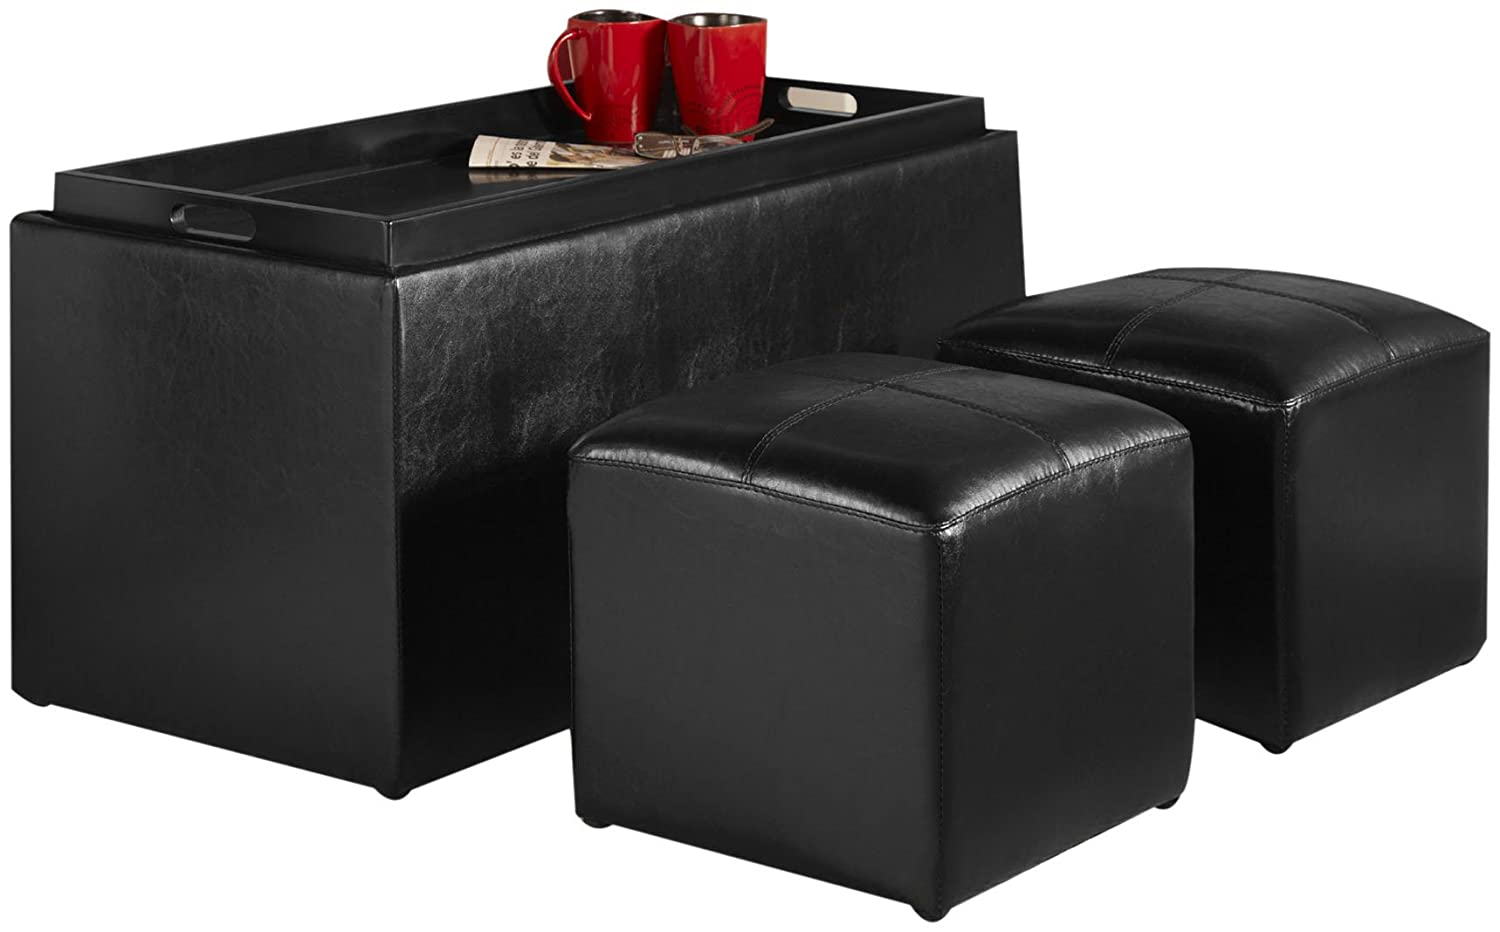 Faux Leather Storage Bench 2 Side Ottomans Coffee Table Footstool Hardwood Tray Ebay